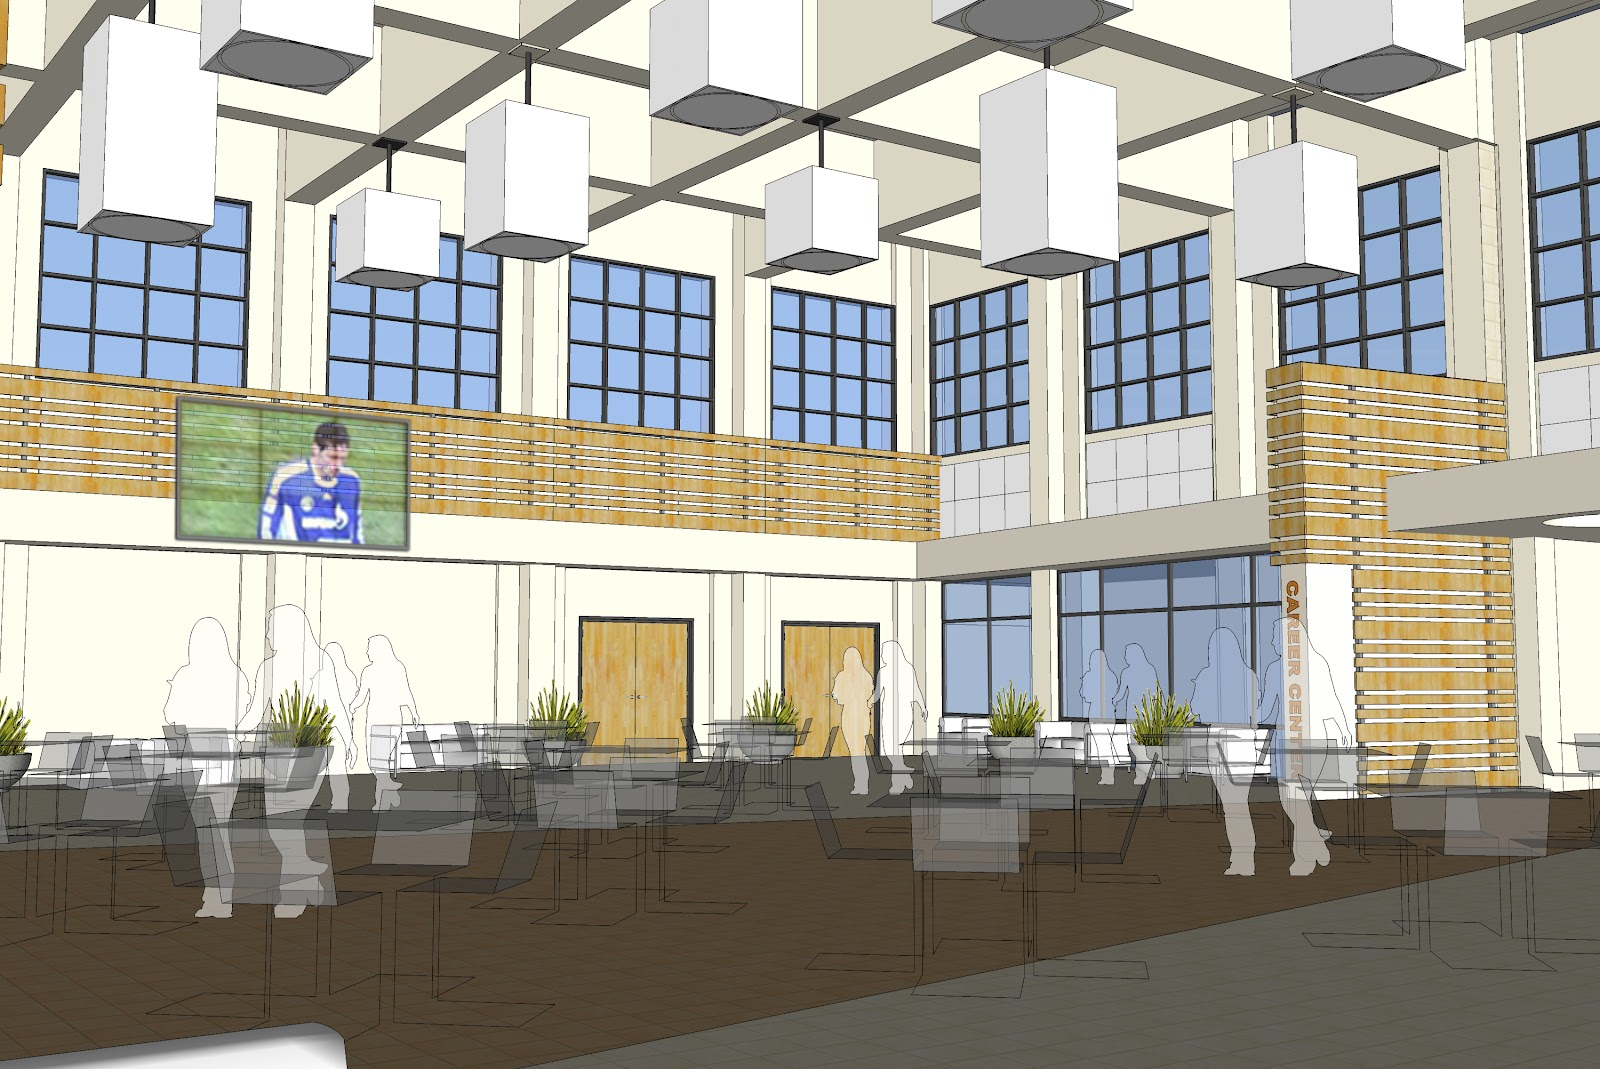 Caada Students Will Have A New Place To Study Eat And Socialize On Campus With The Opening Of Grove In August